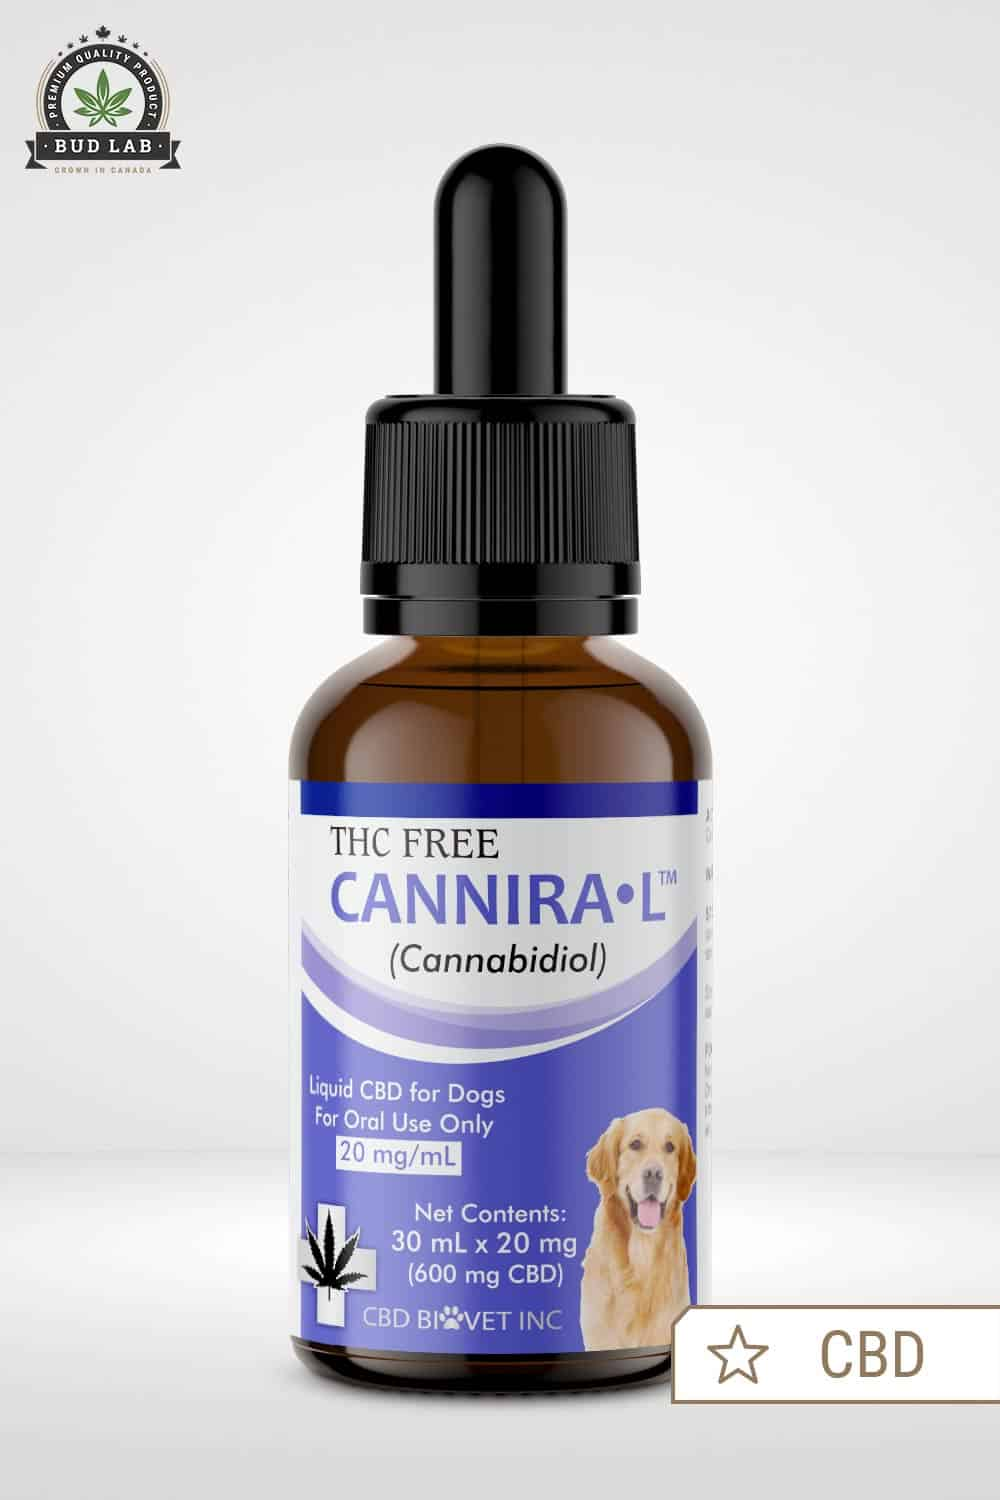 Canniral CBD Dropper For Dogs, product image